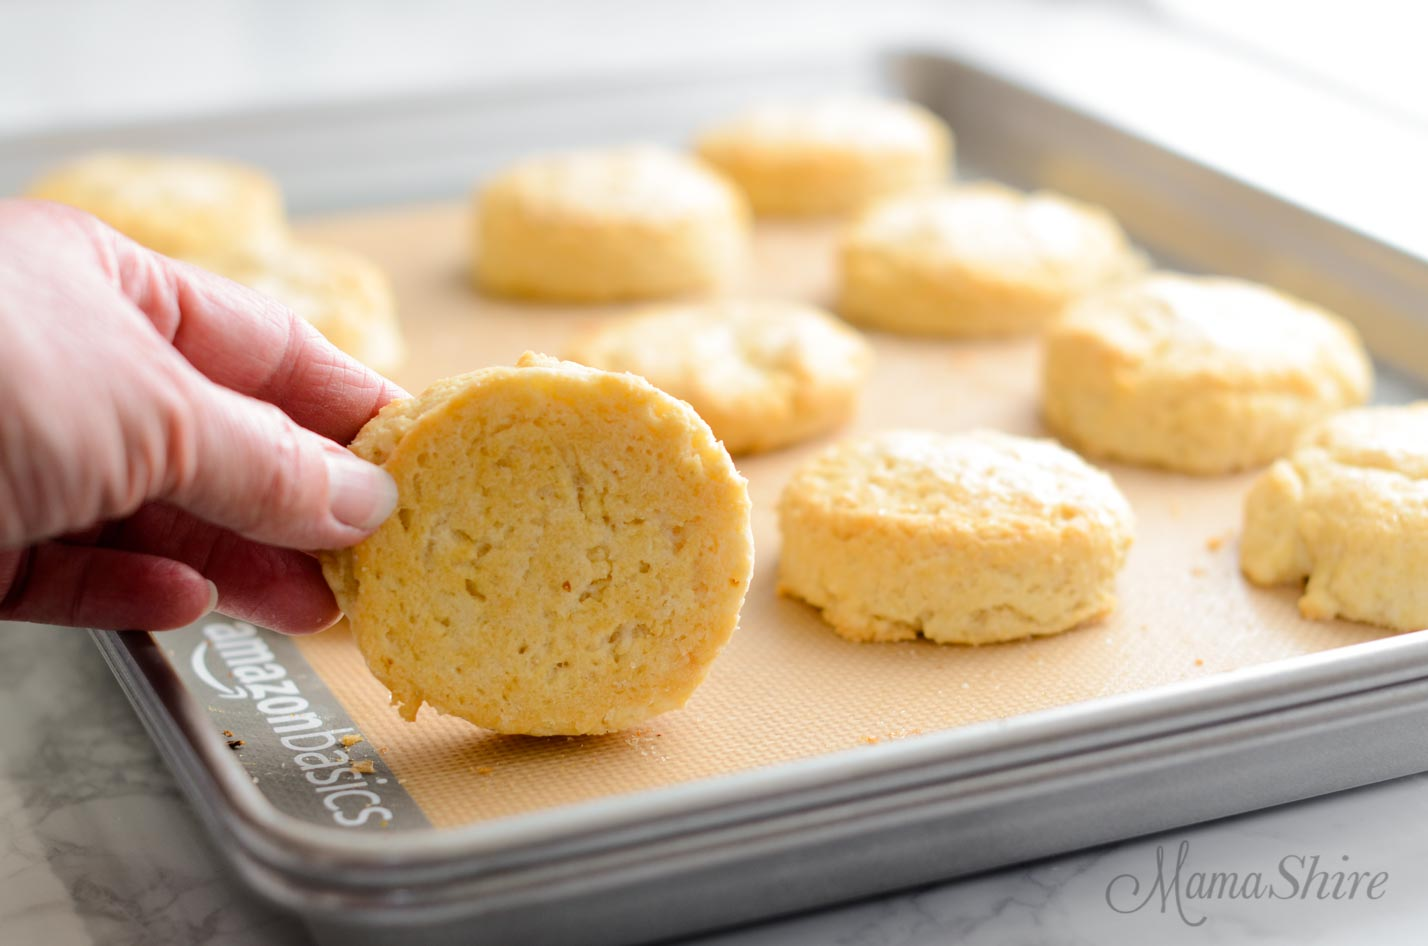 Gluten-free shortcakes with no burning on the bottom.